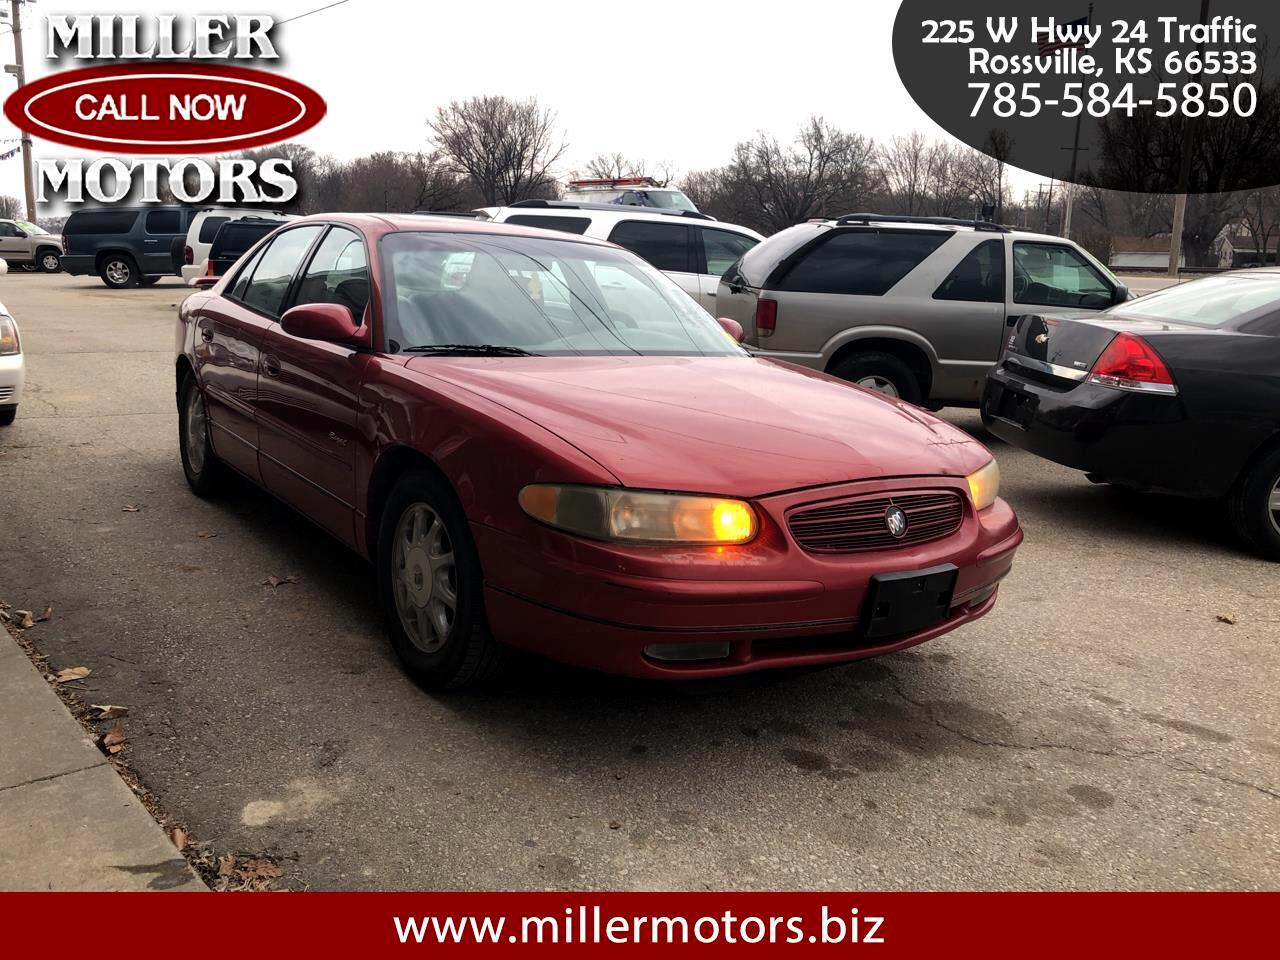 1999 Buick Regal 4dr Sdn LSE